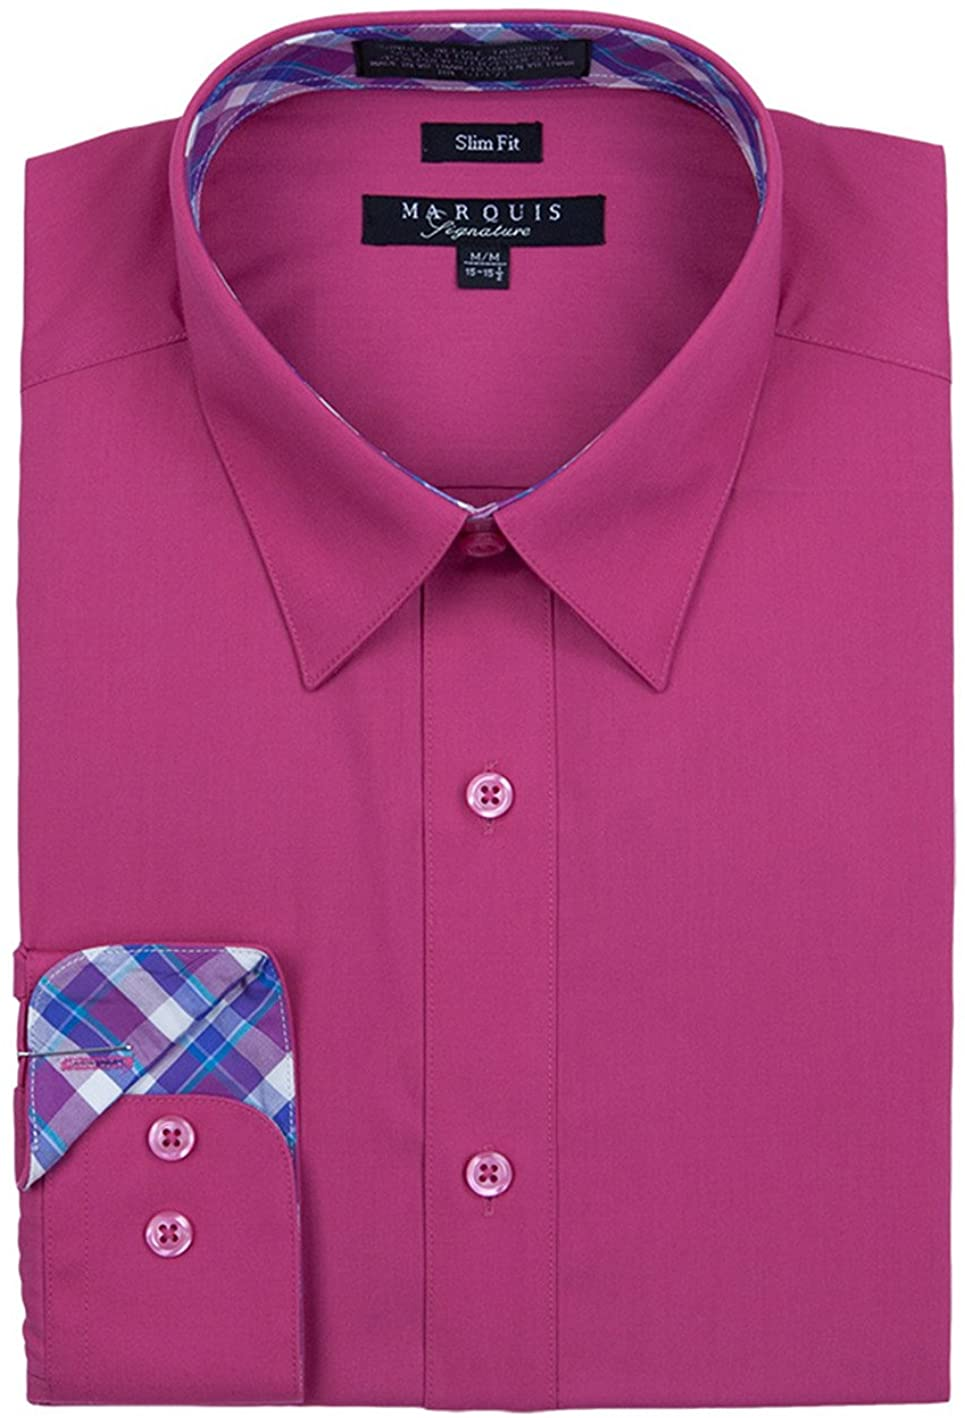 Marquis Men's Slim Fit Long Sleeve Collared Button Down Dress Shirt with Contrast Trim, Available in Variety of Colors